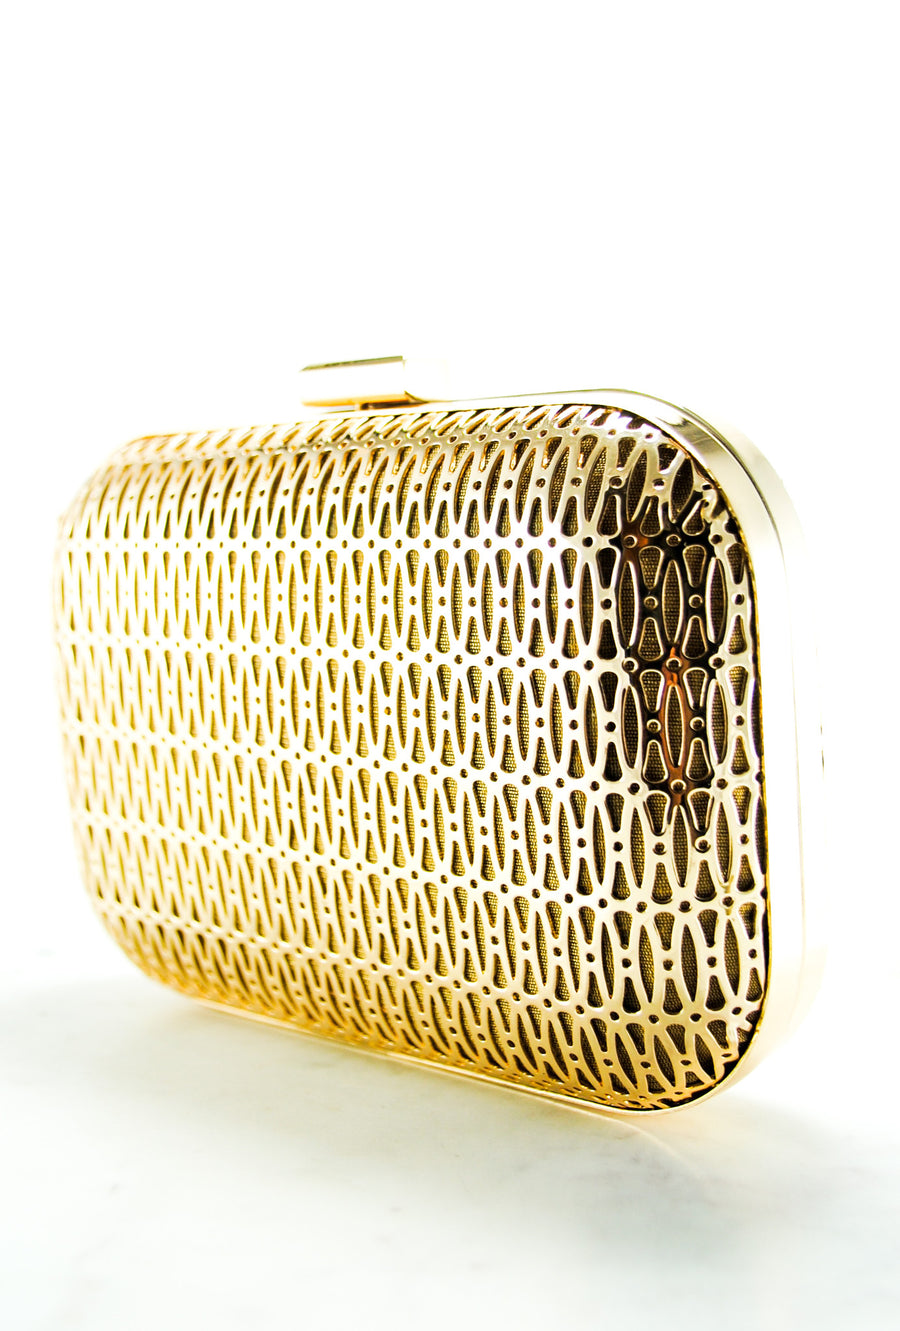 Gold metal Clutch - Desi Royale